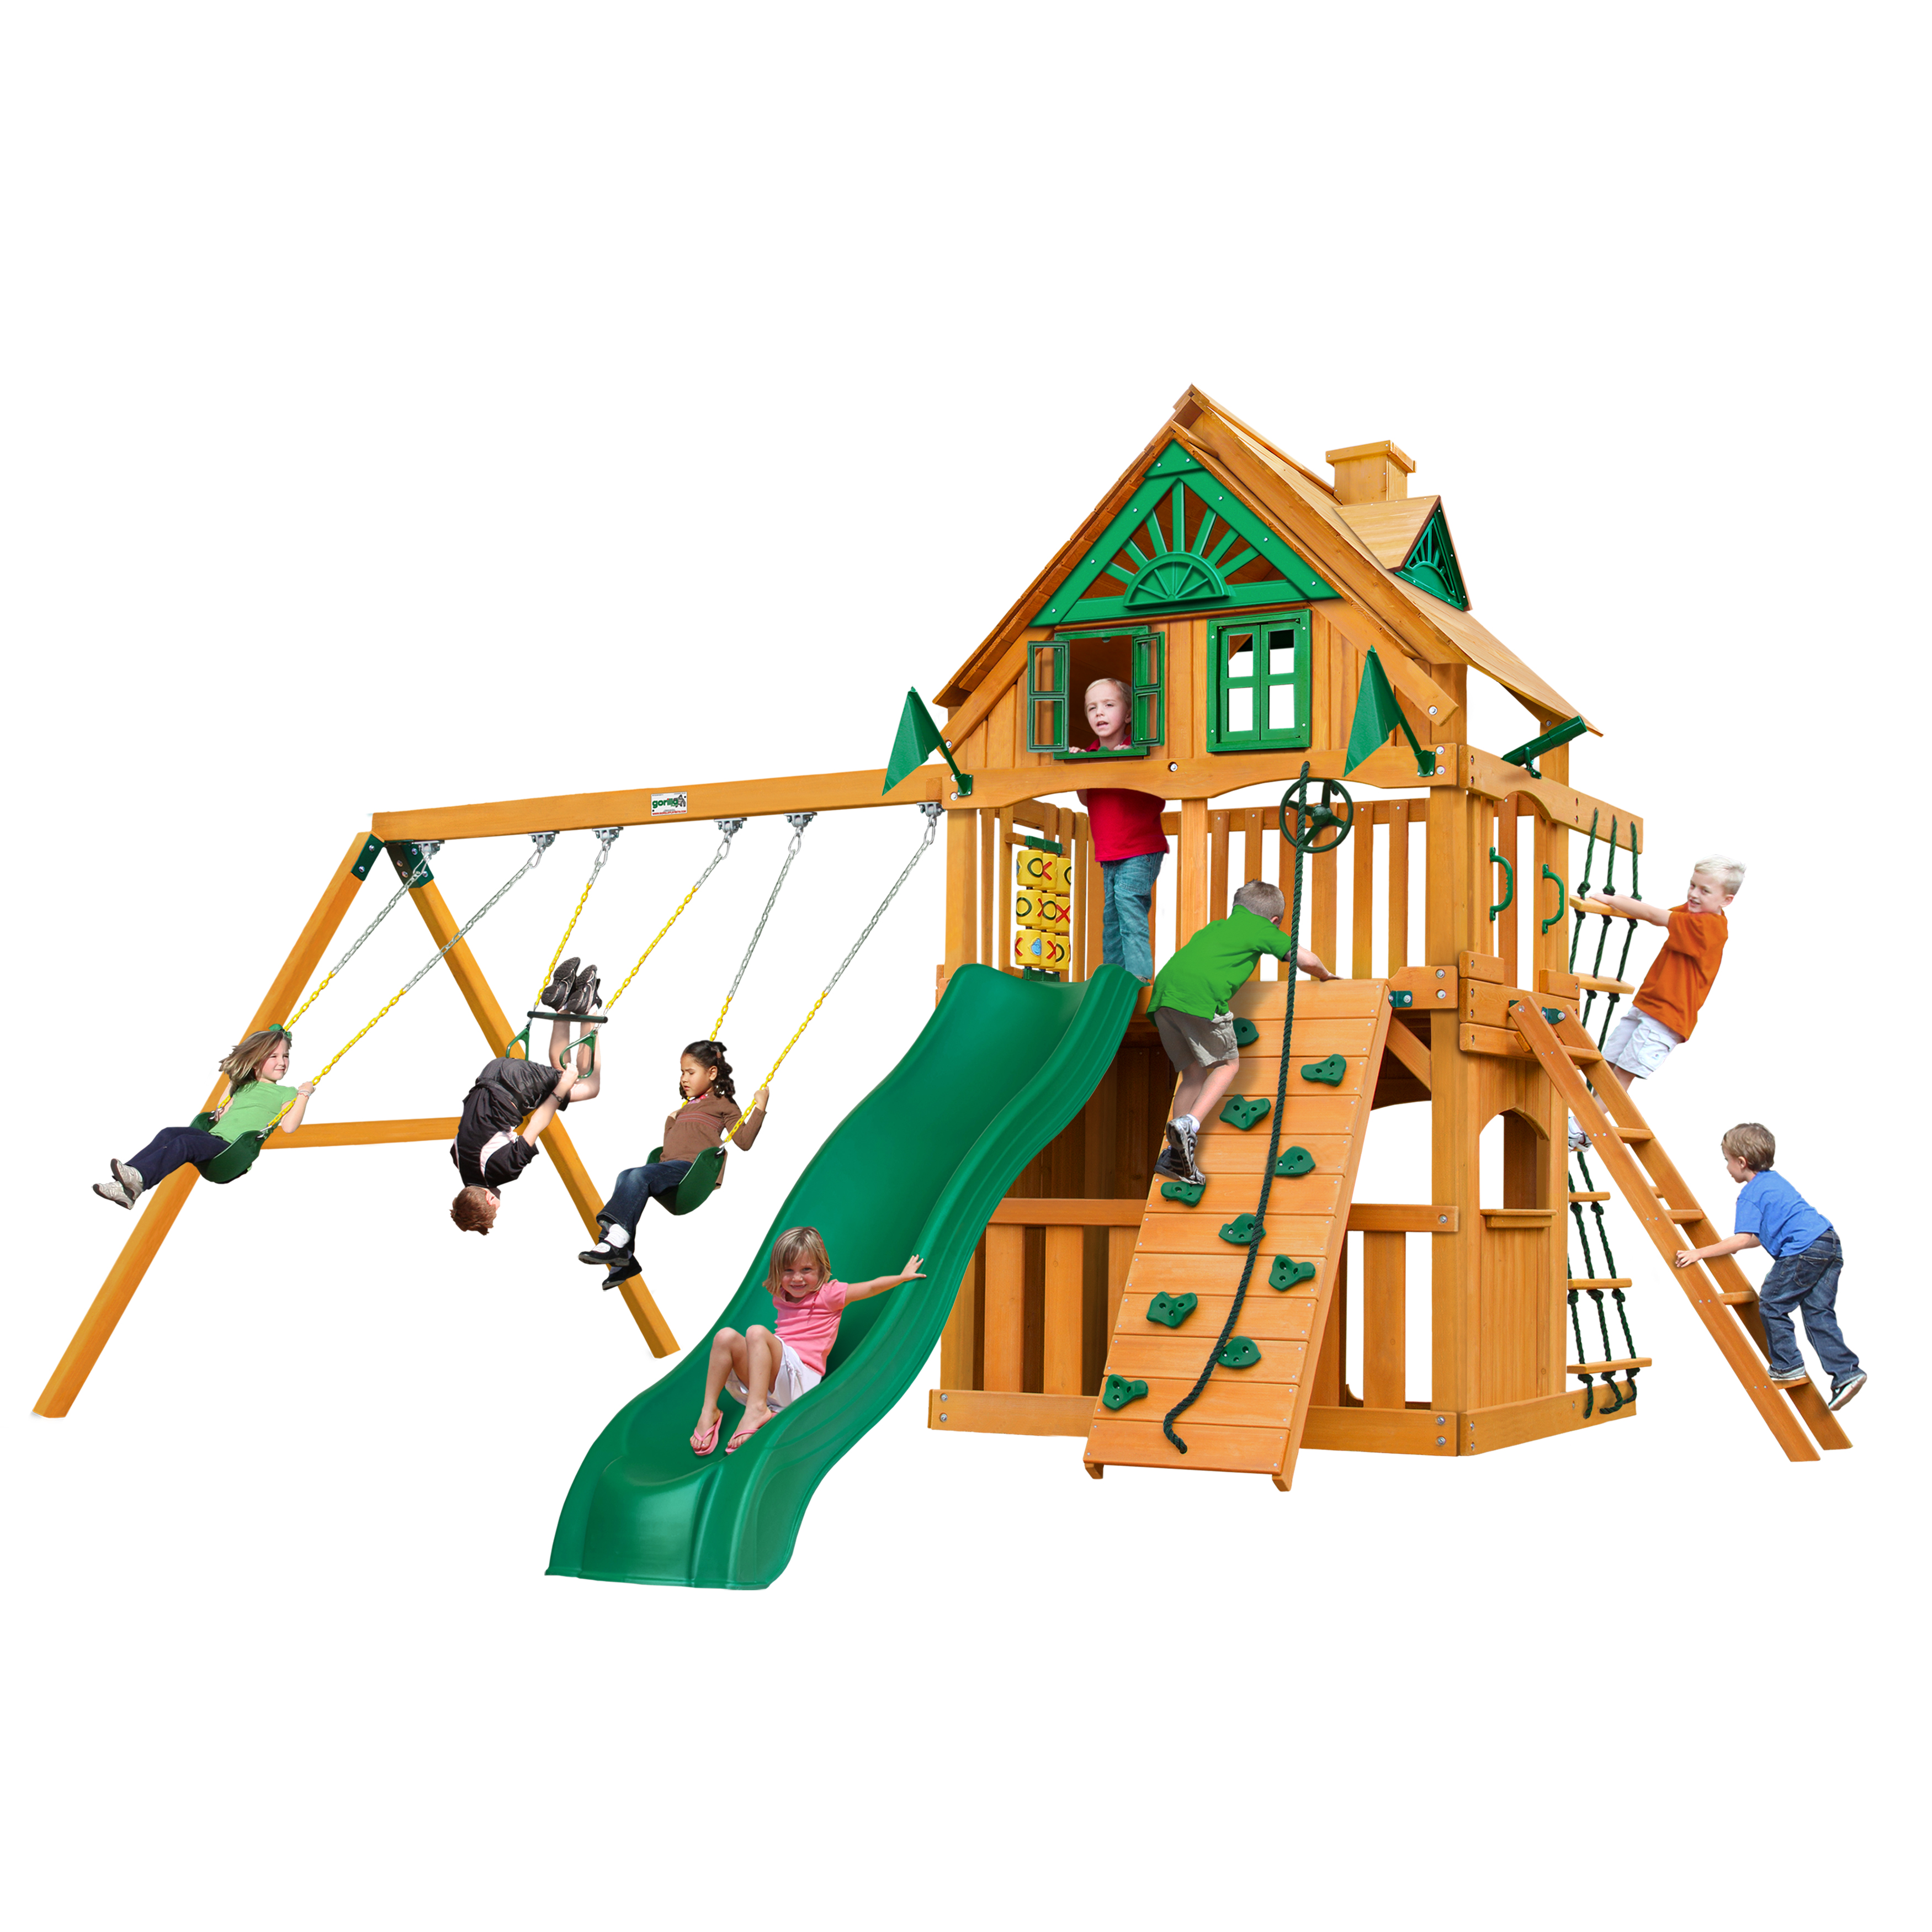 Gorilla Playsets Chateau Clubhouse Treehouse Wooden Swing Set With